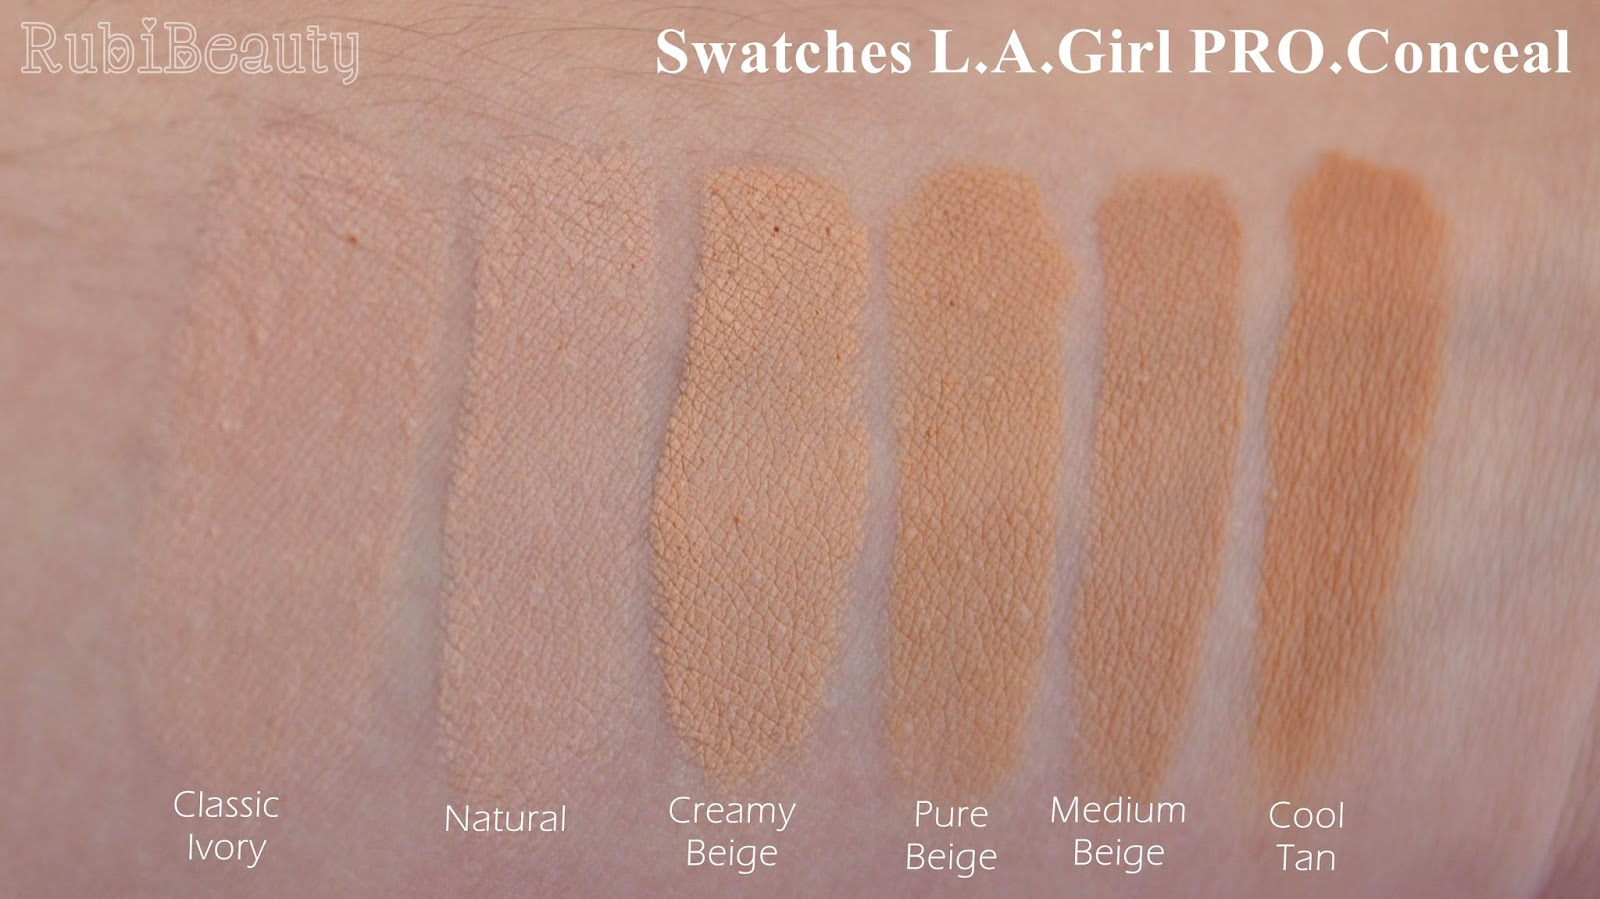 rubibeauty review swatch swatches corrector LA Girl L.A Pro conceal HD concealer